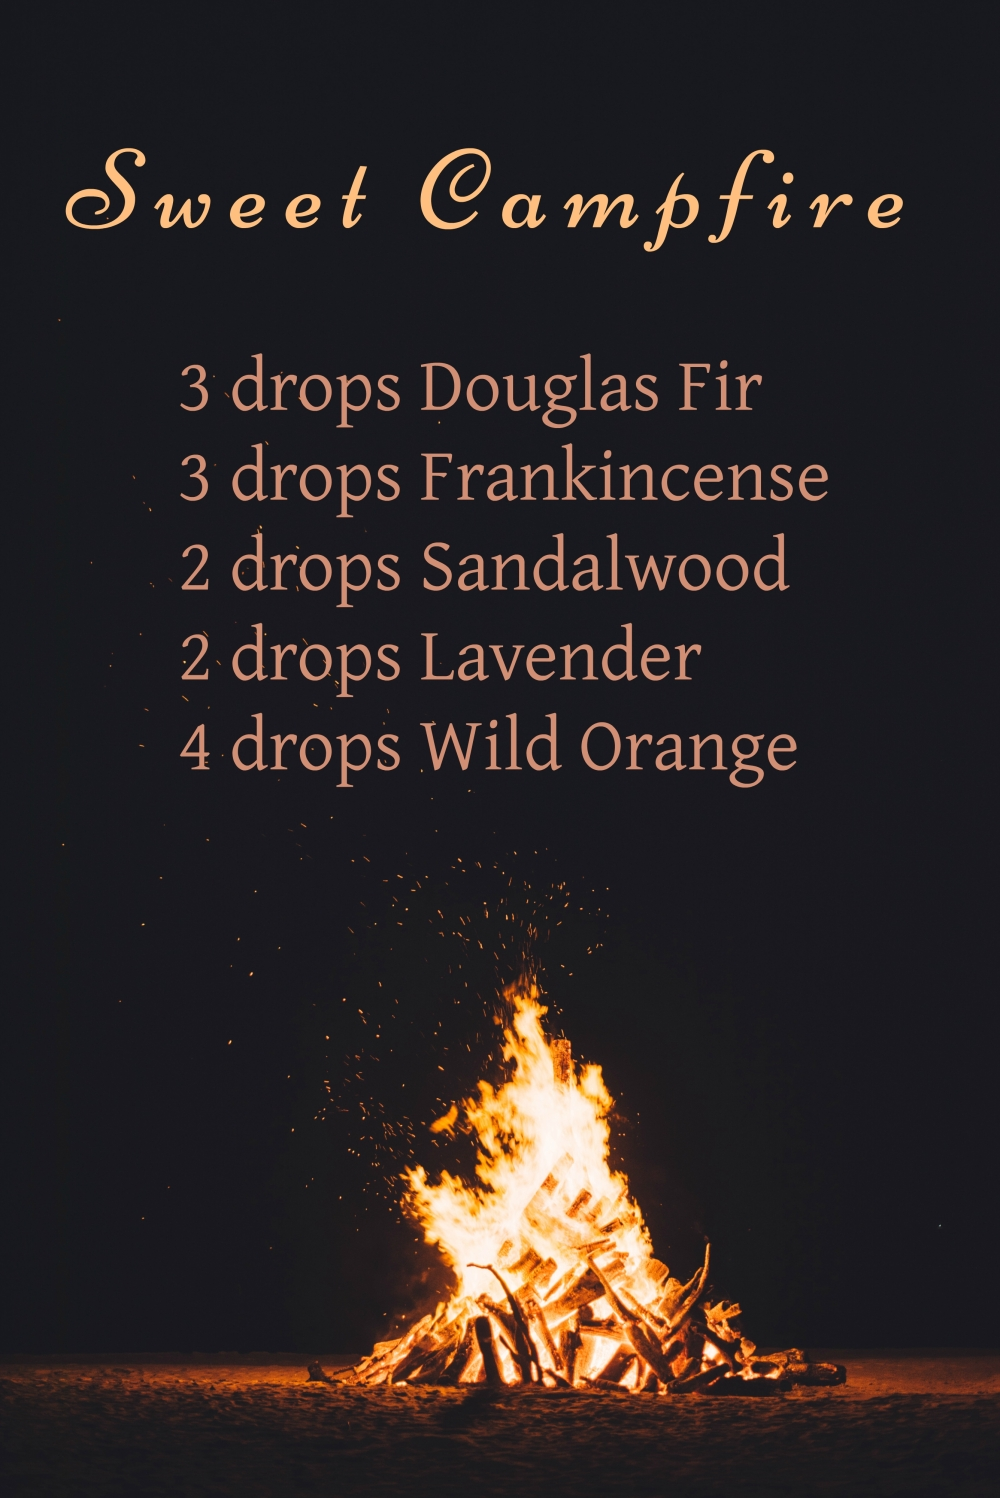 Honey, breathe. Sweet Campfire Diffuser Blend